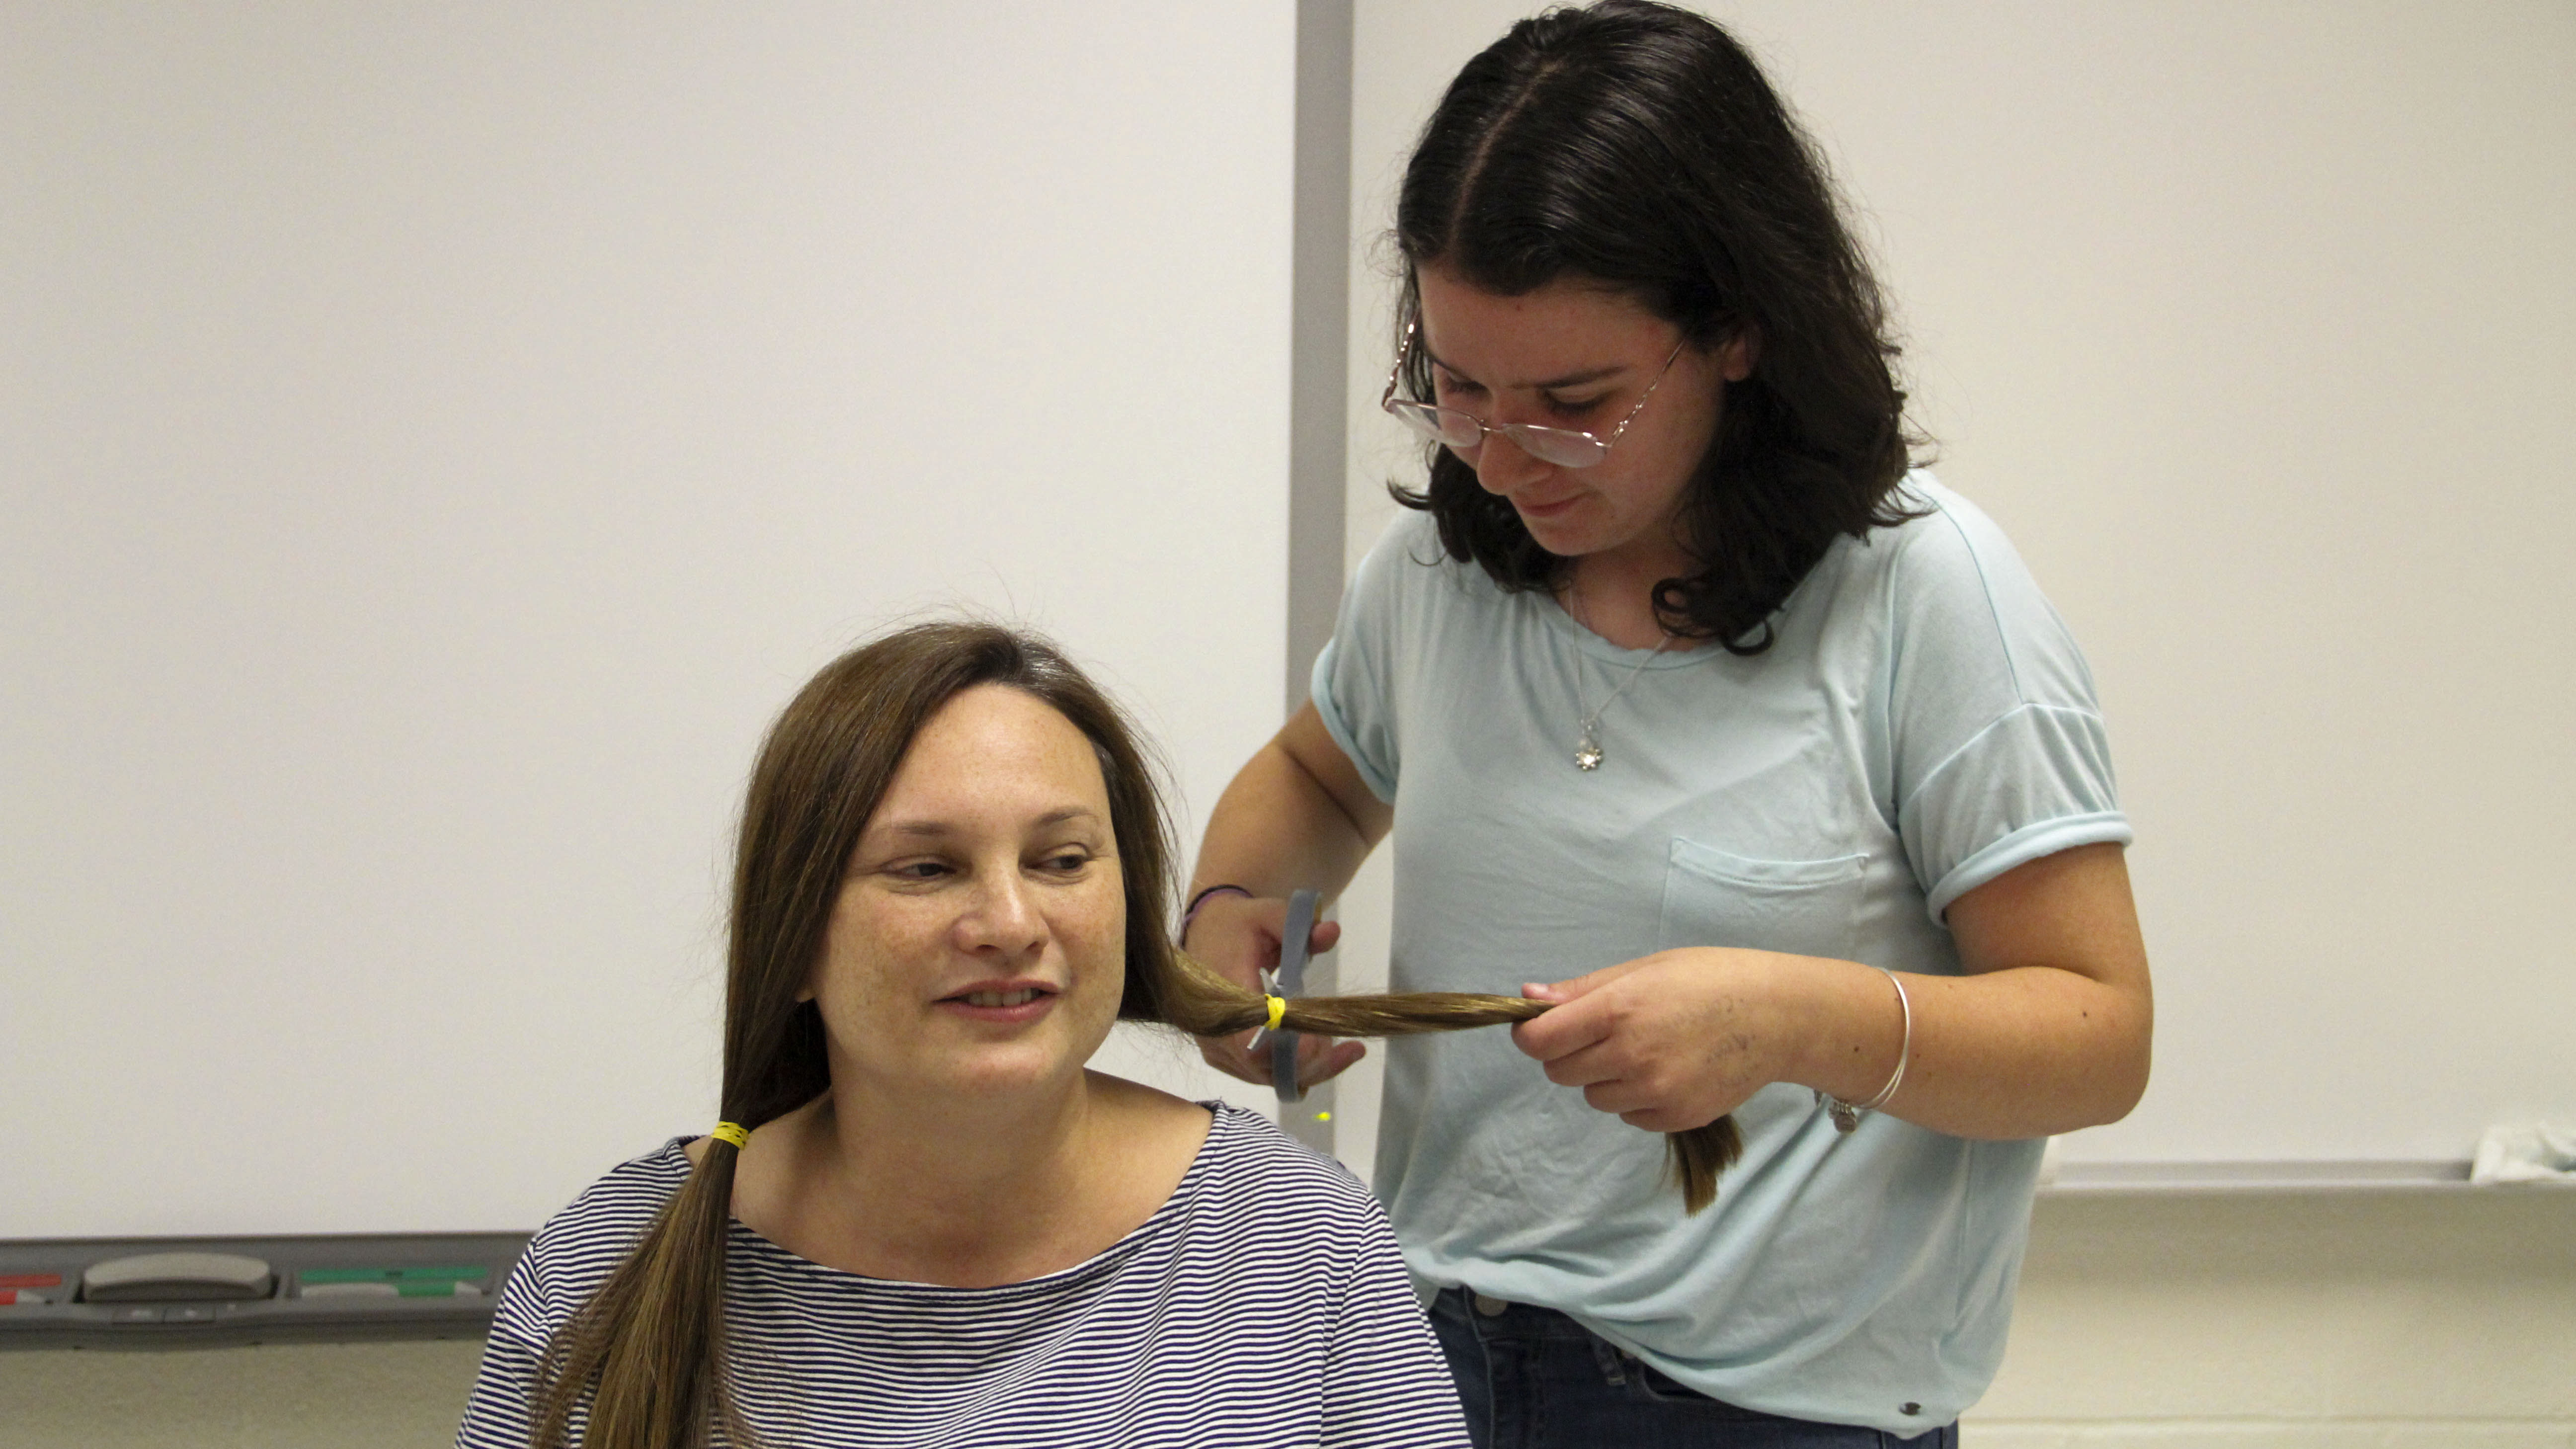 Taking A Cut To Make A Difference